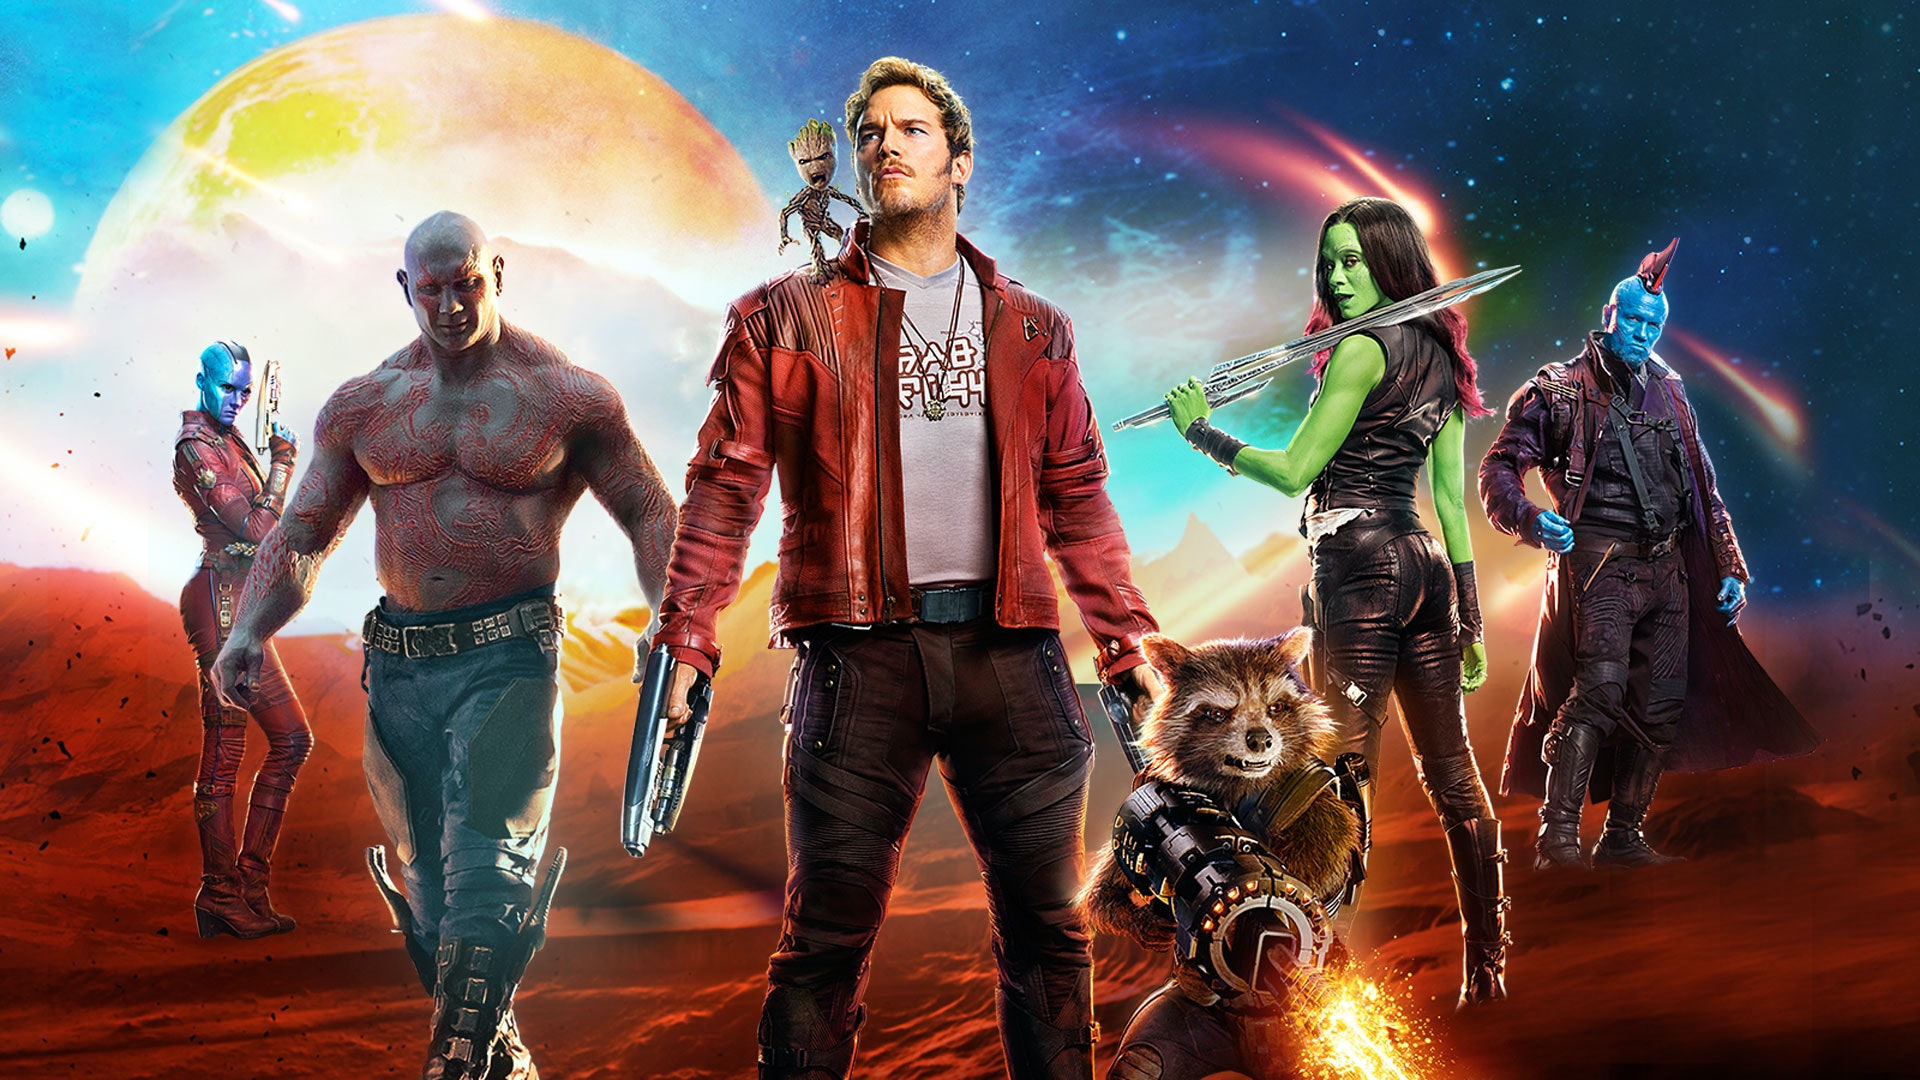 For a team of mostly aliens, the 'Guardians of the Galaxy' movies are strangely relatable.